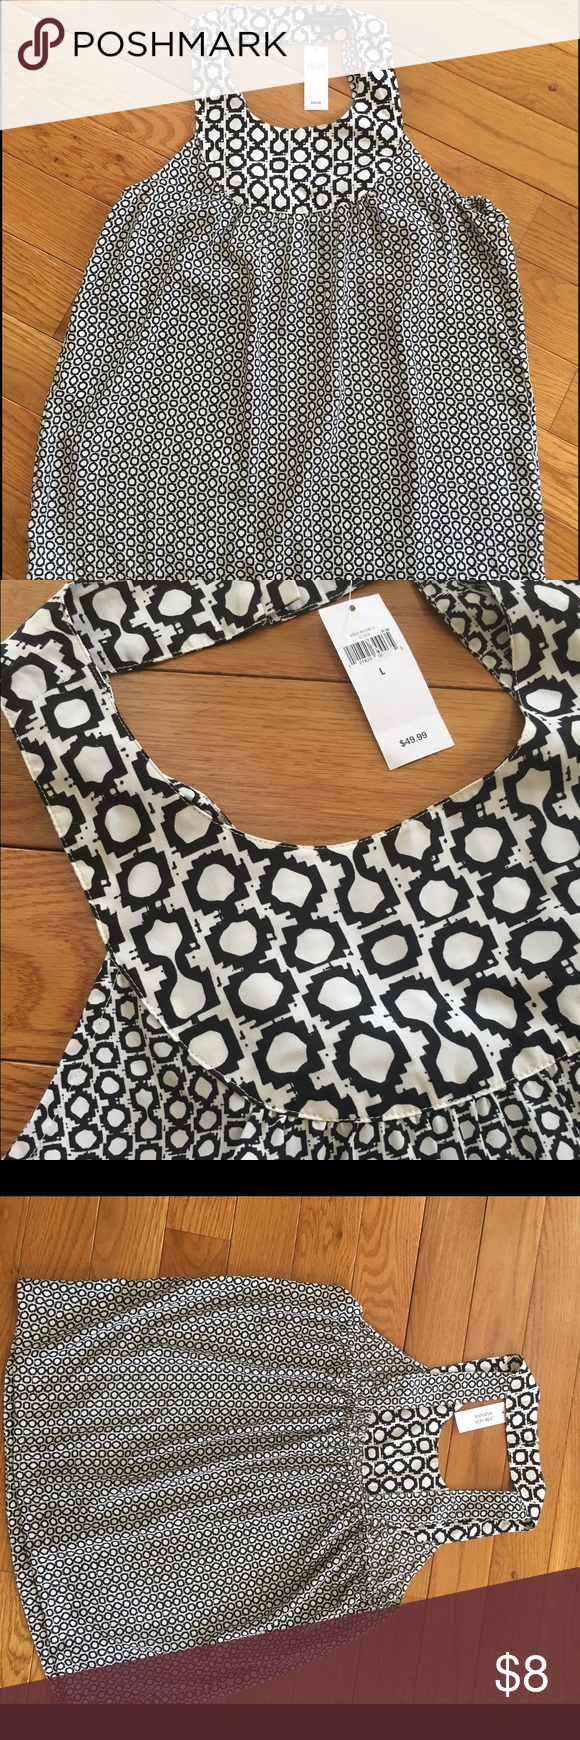 Banana Republic Black and White Tank Banana Republic black and white tank. Never worn, with tag still on. Re-posting since is doesn't fit me. 100% polyester. Banana Republic Tops Tank Tops